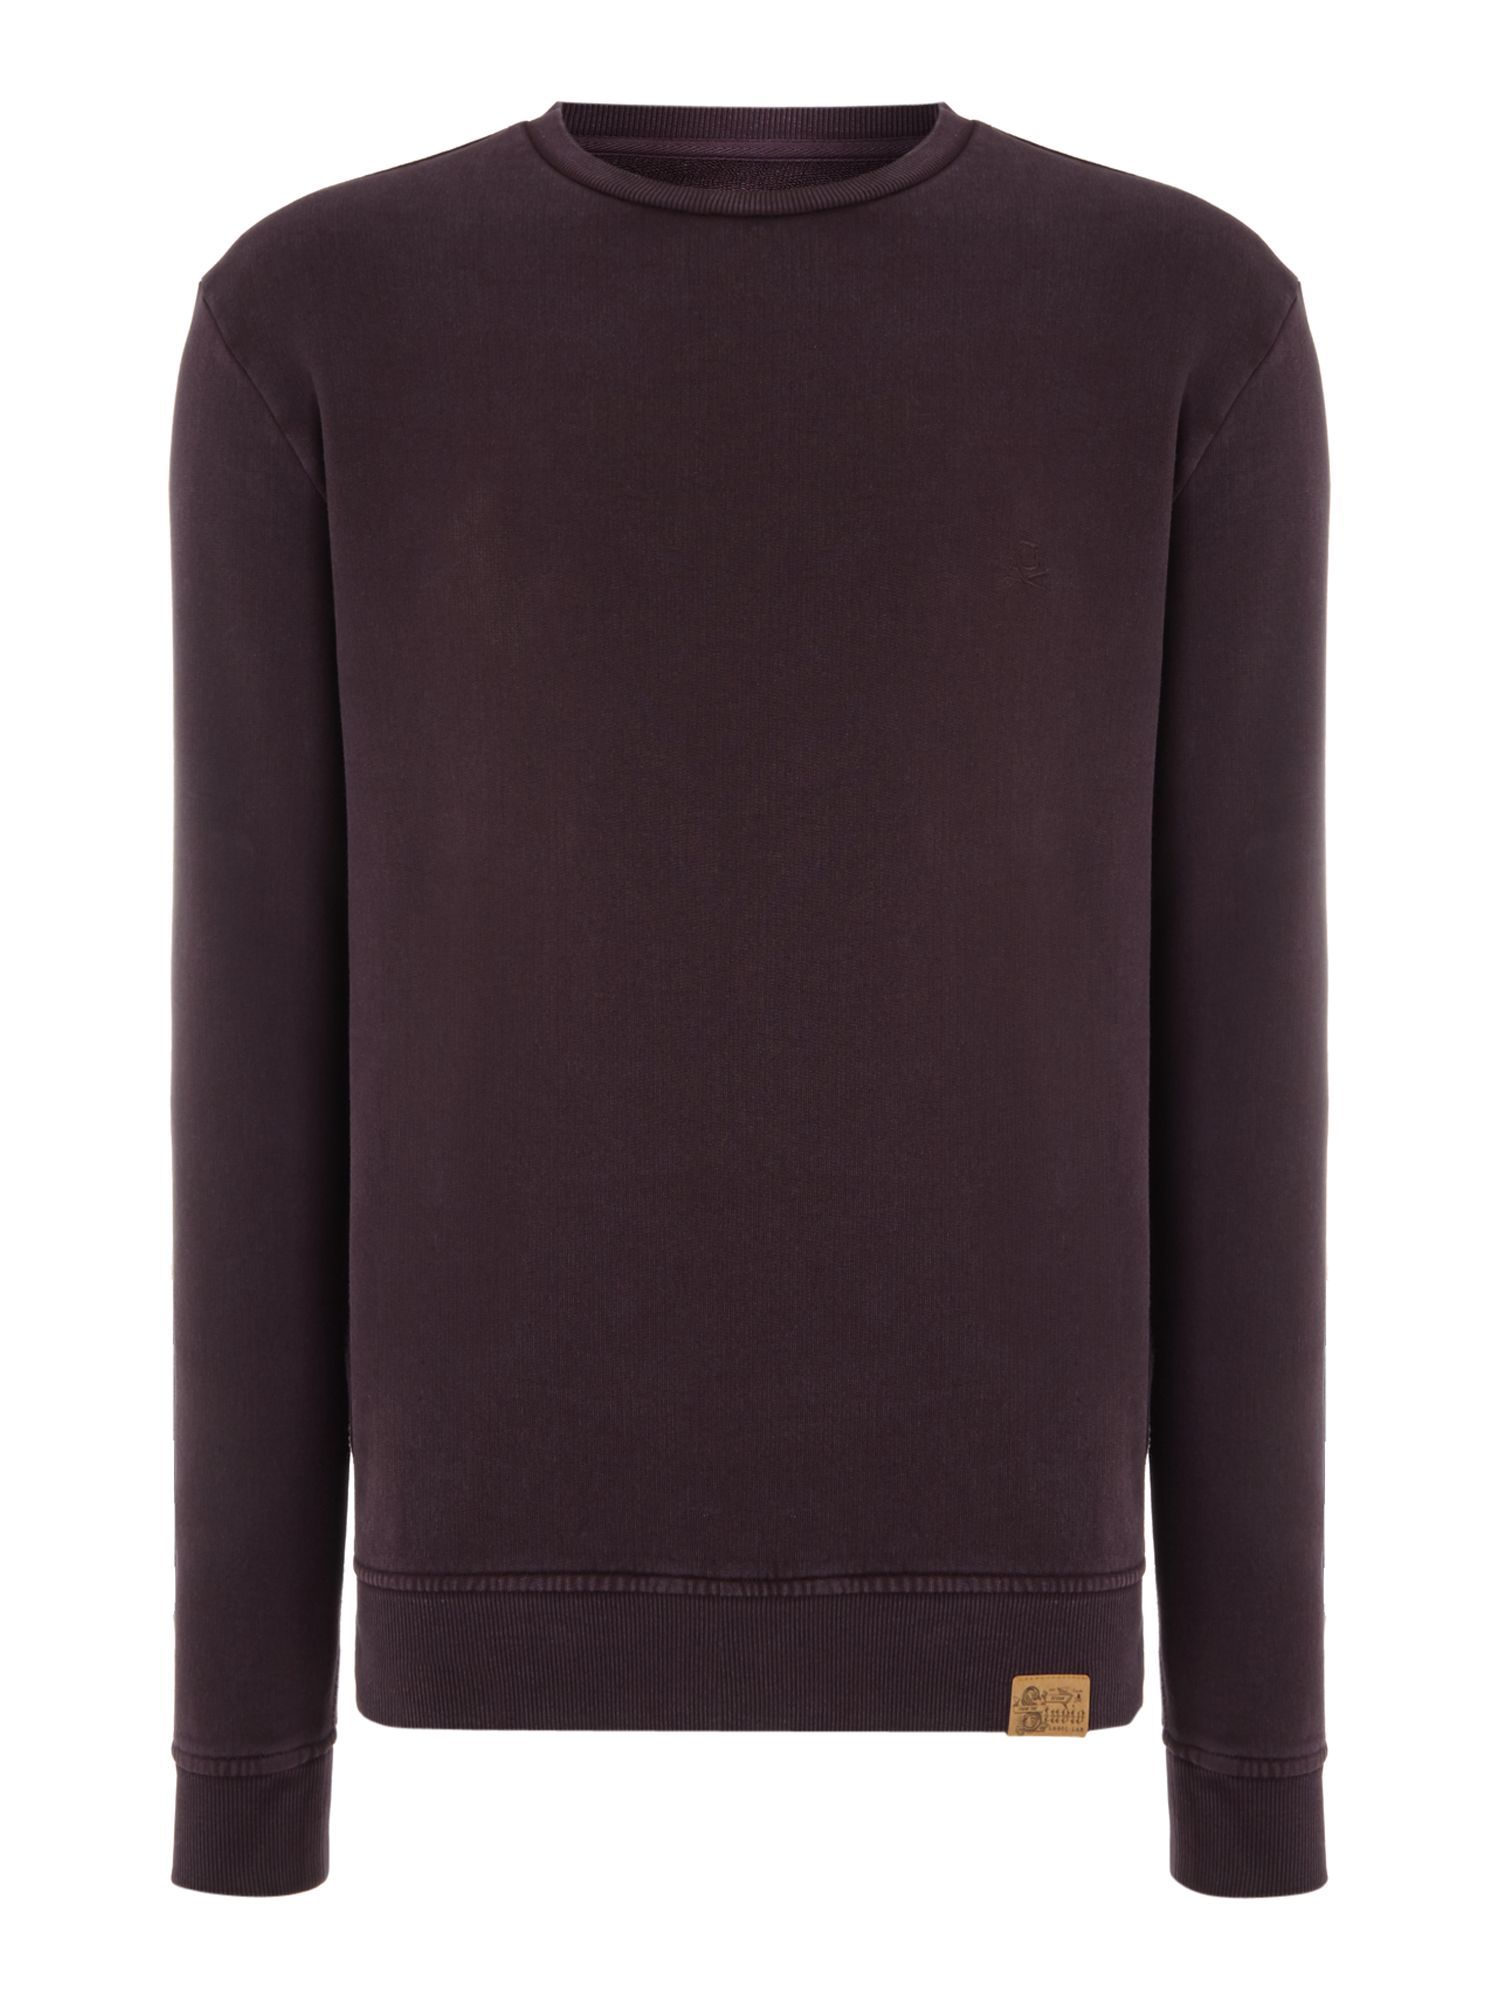 Ledbury crew neck sweater